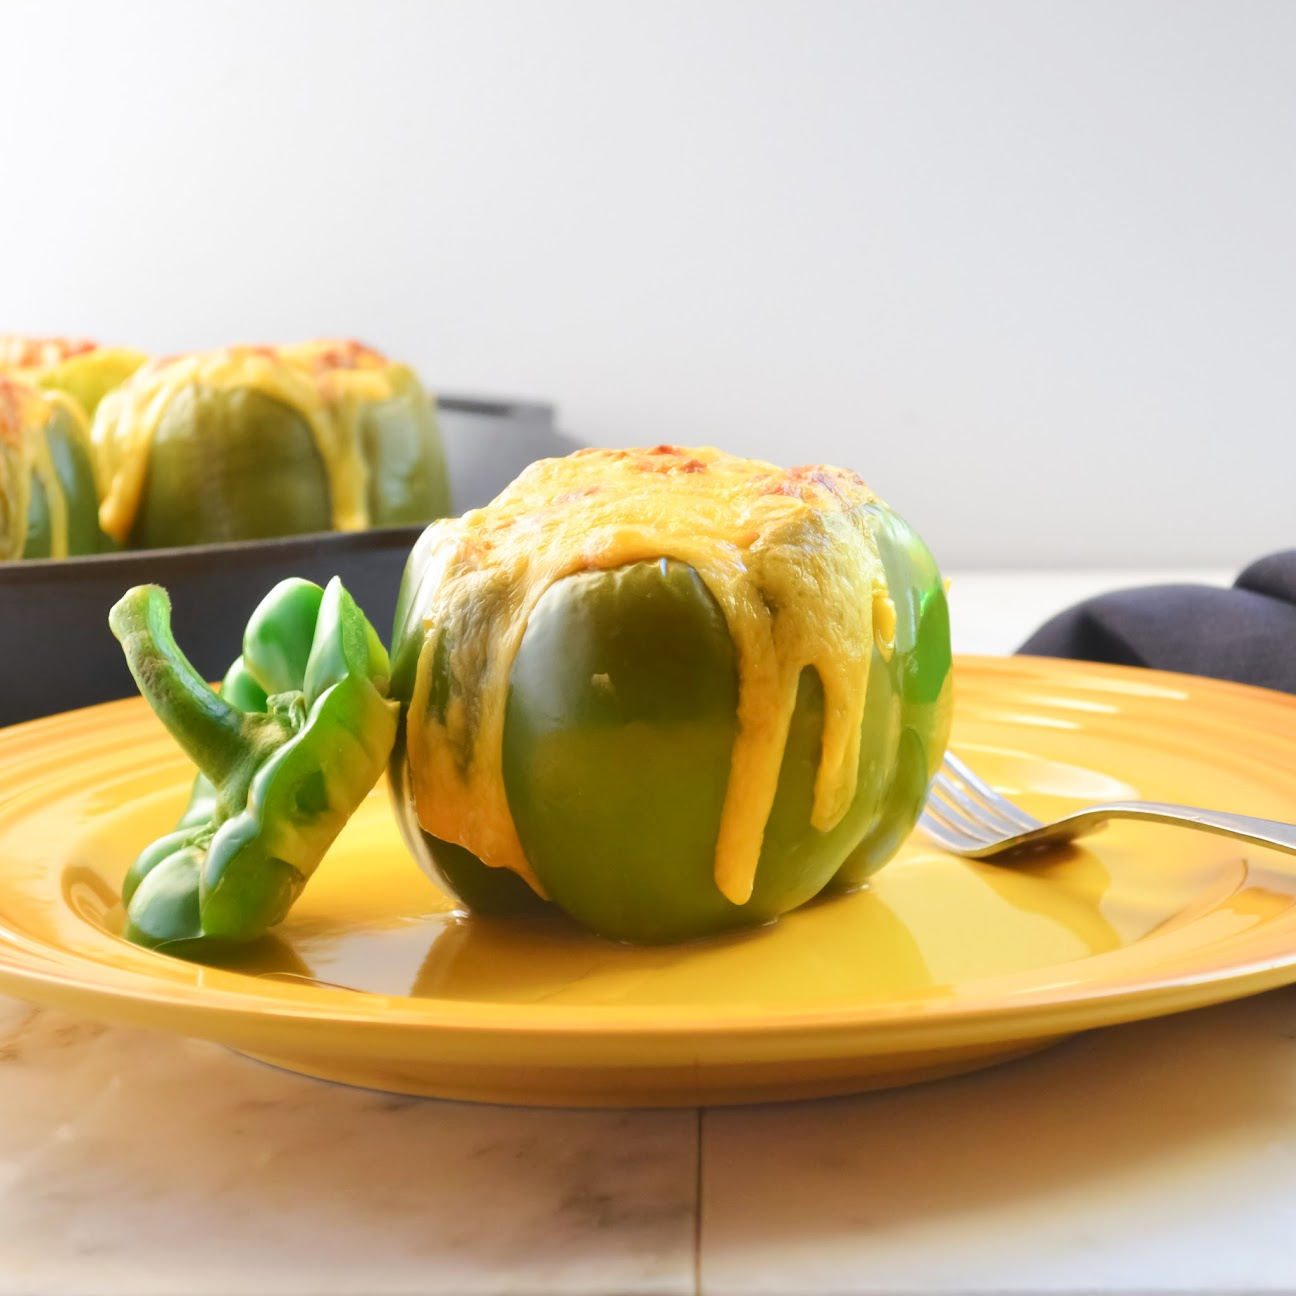 Stuffed-Bell-Peppers-Cheese-Running.jpg